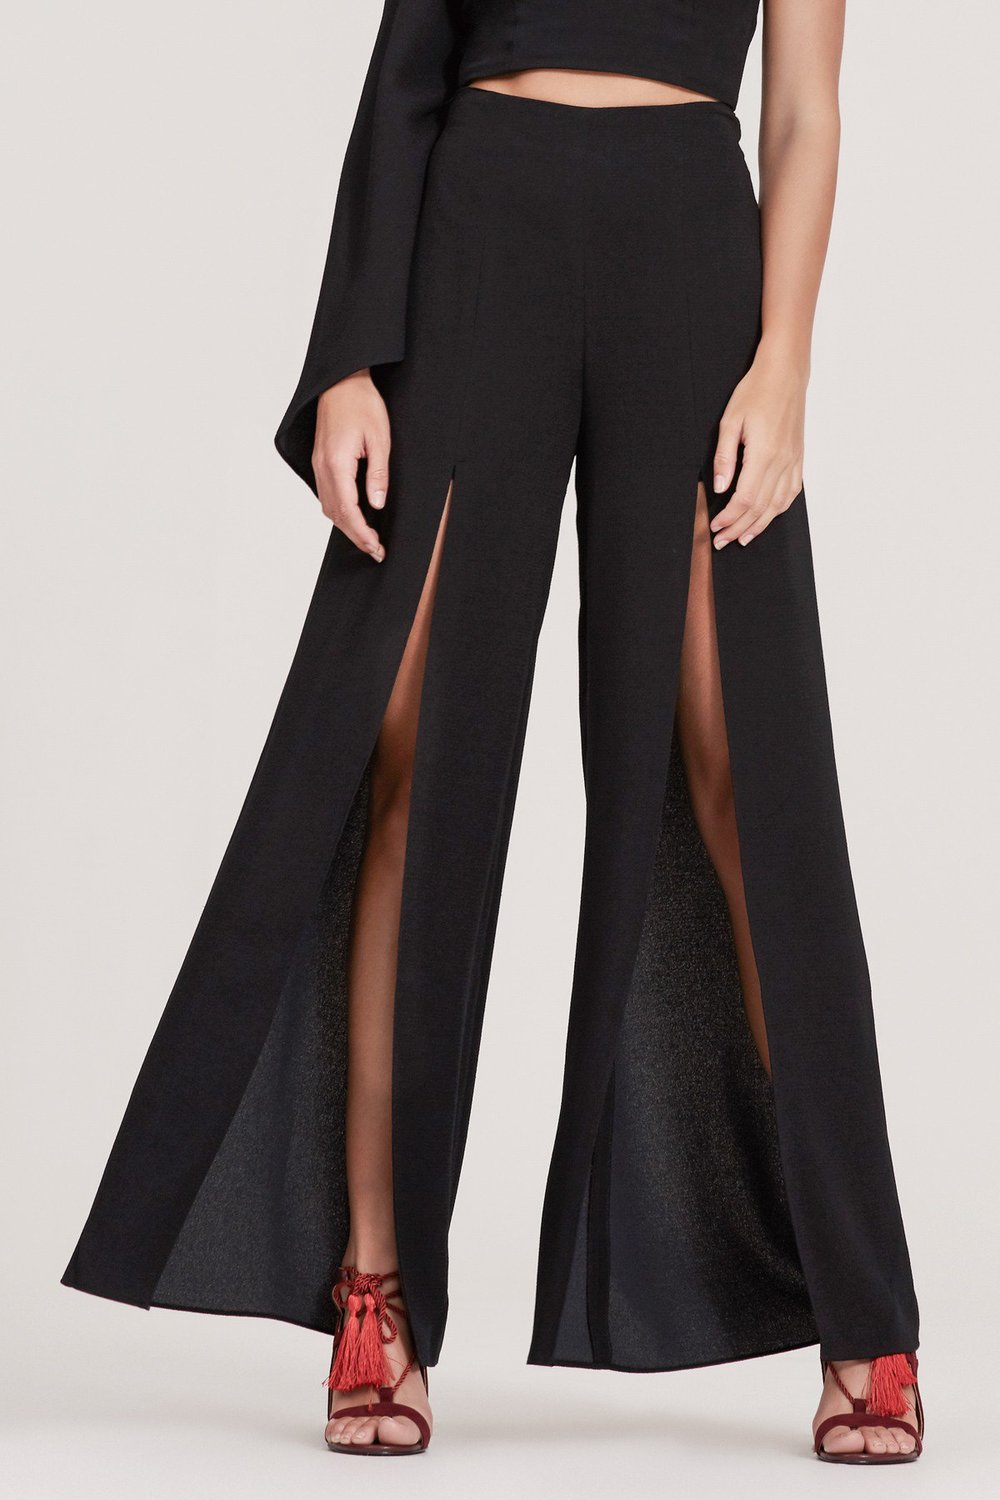 Shop Finders Haunted Split Pant.